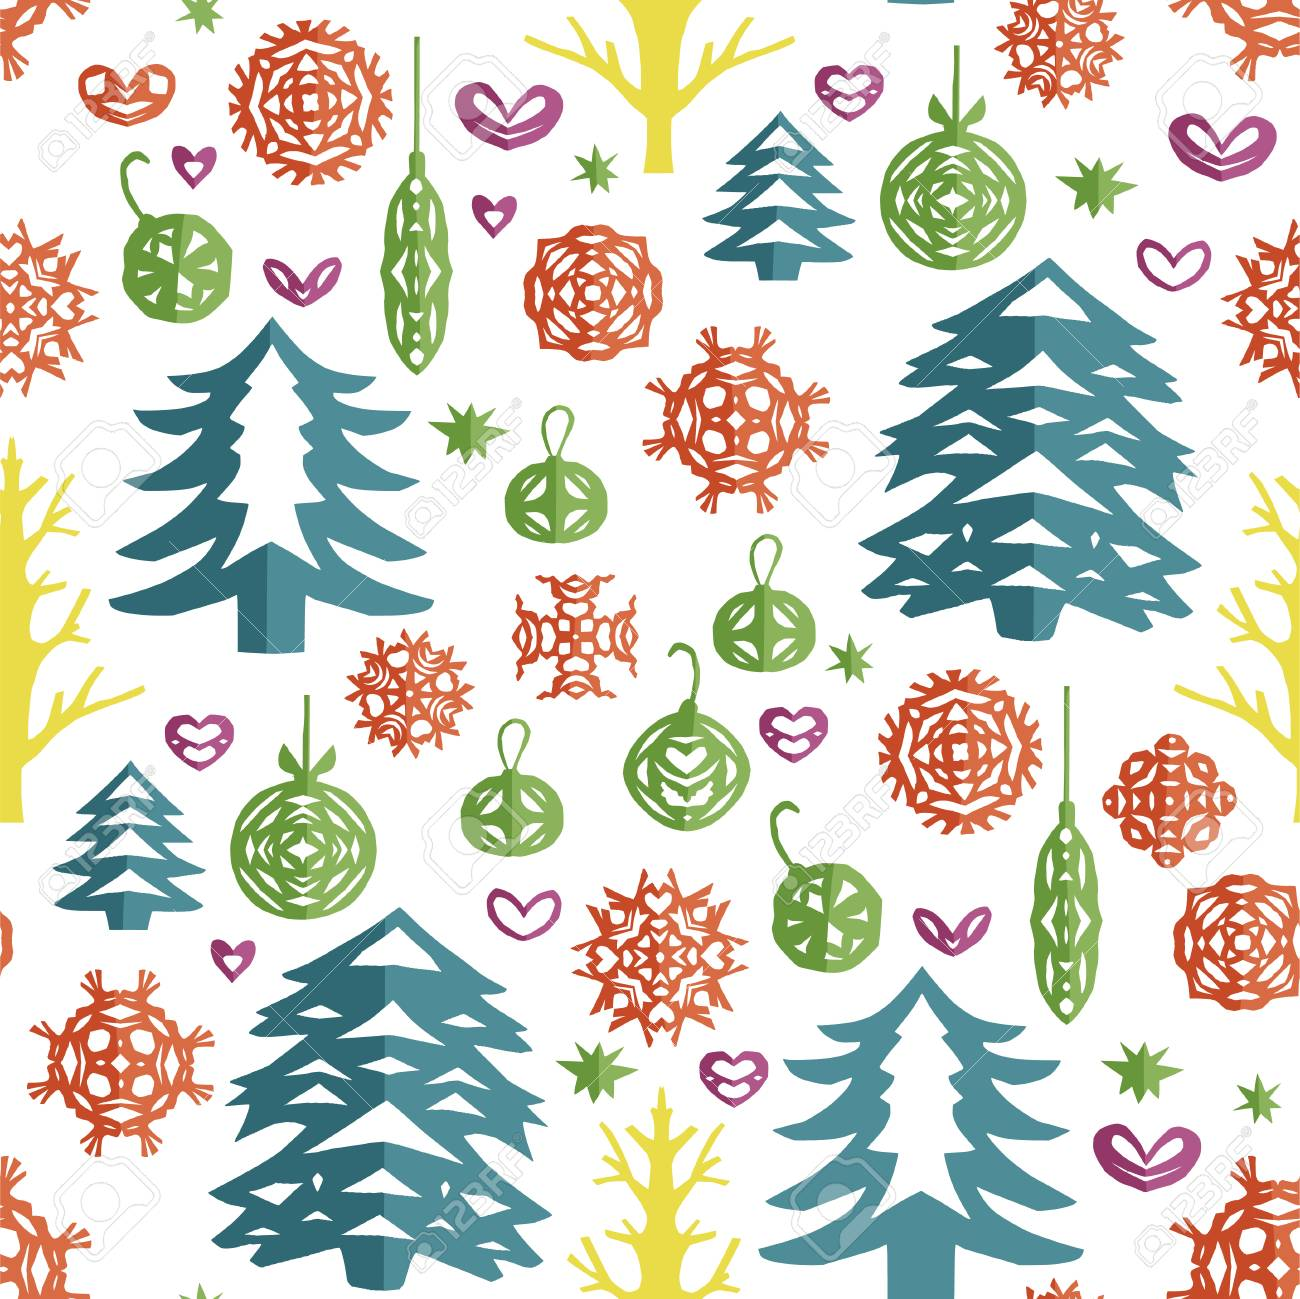 Christmas Seamless Pattern Paper Craft Design Cut Out By Scissors